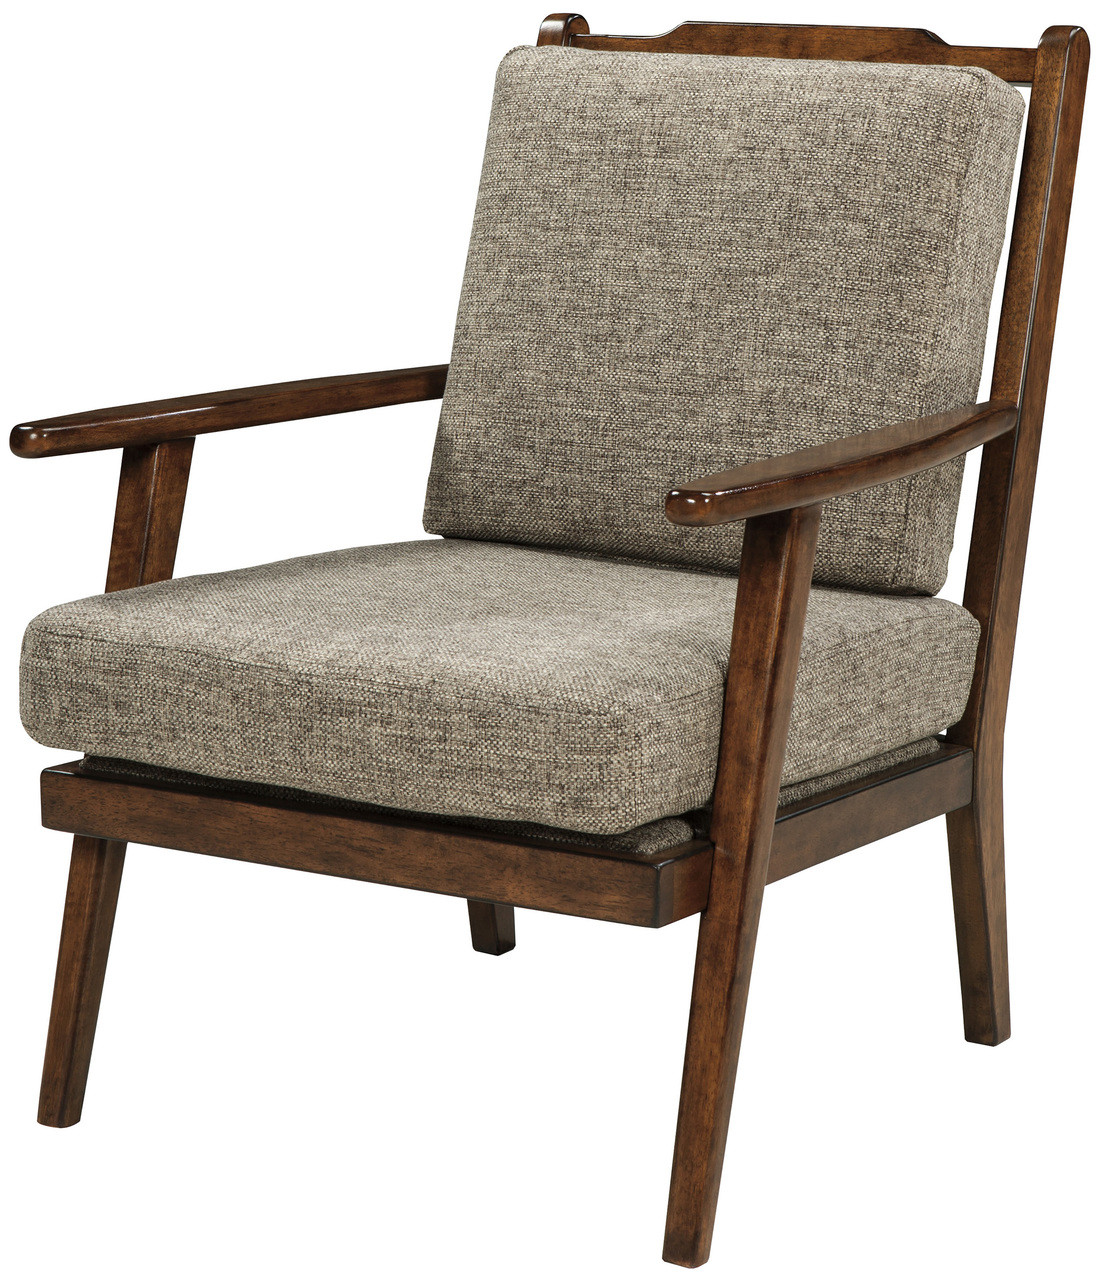 Pleasing Marshal Accent Chair Pabps2019 Chair Design Images Pabps2019Com